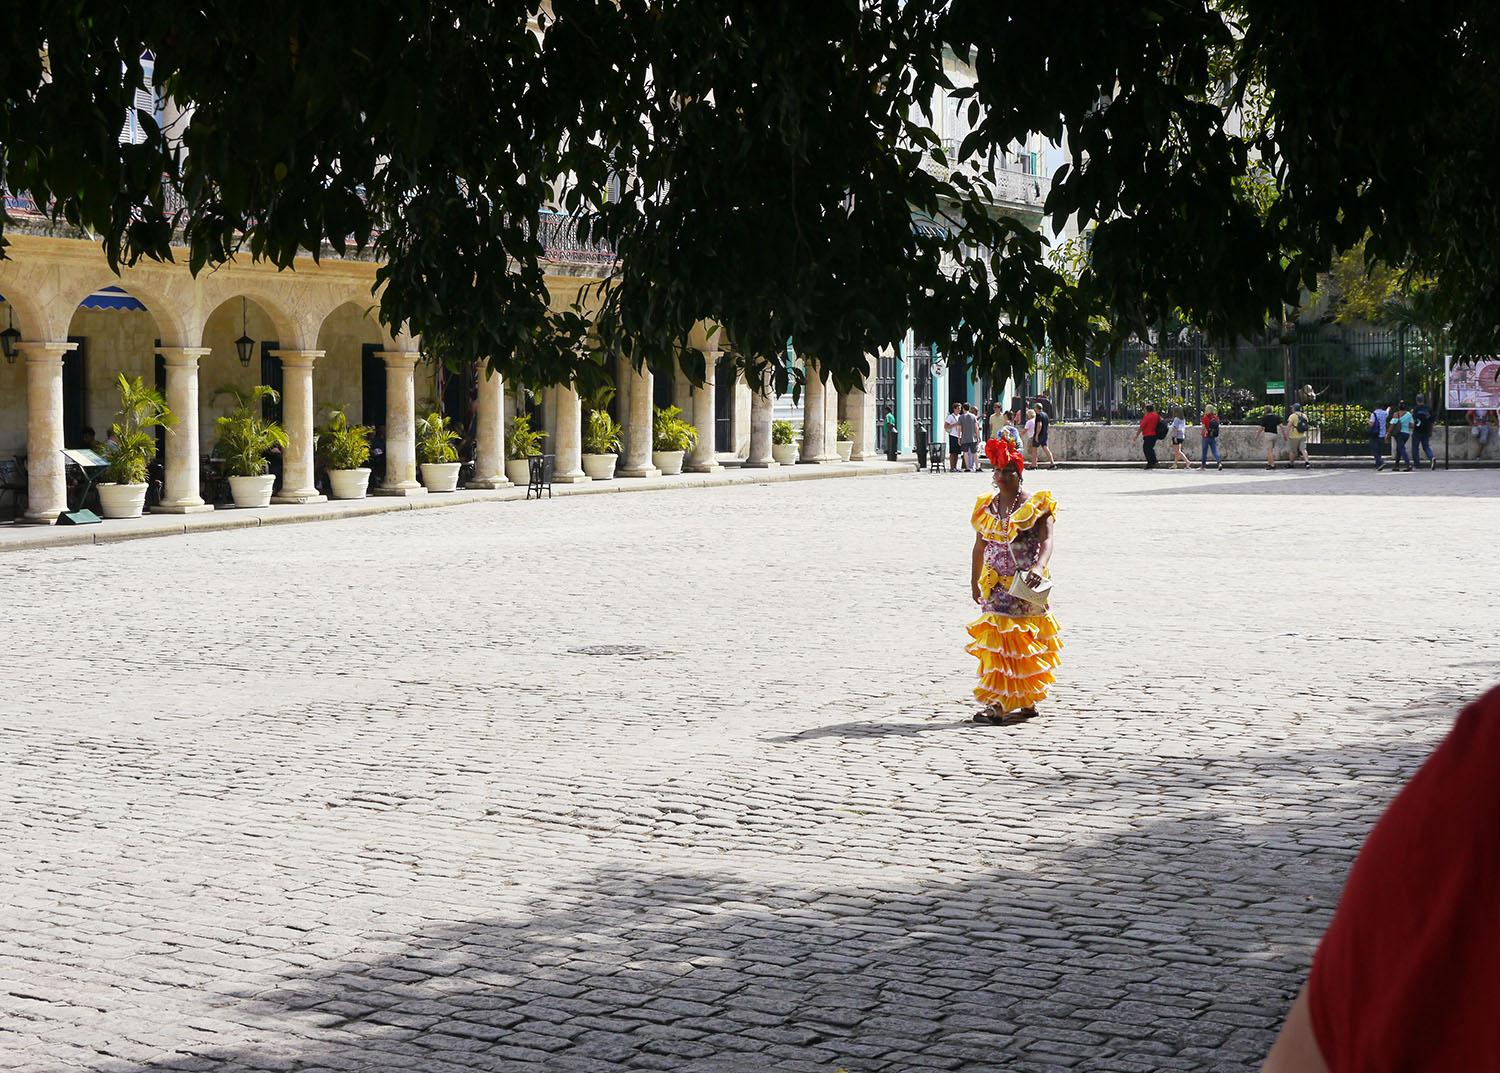 A woman in traditional clothes.